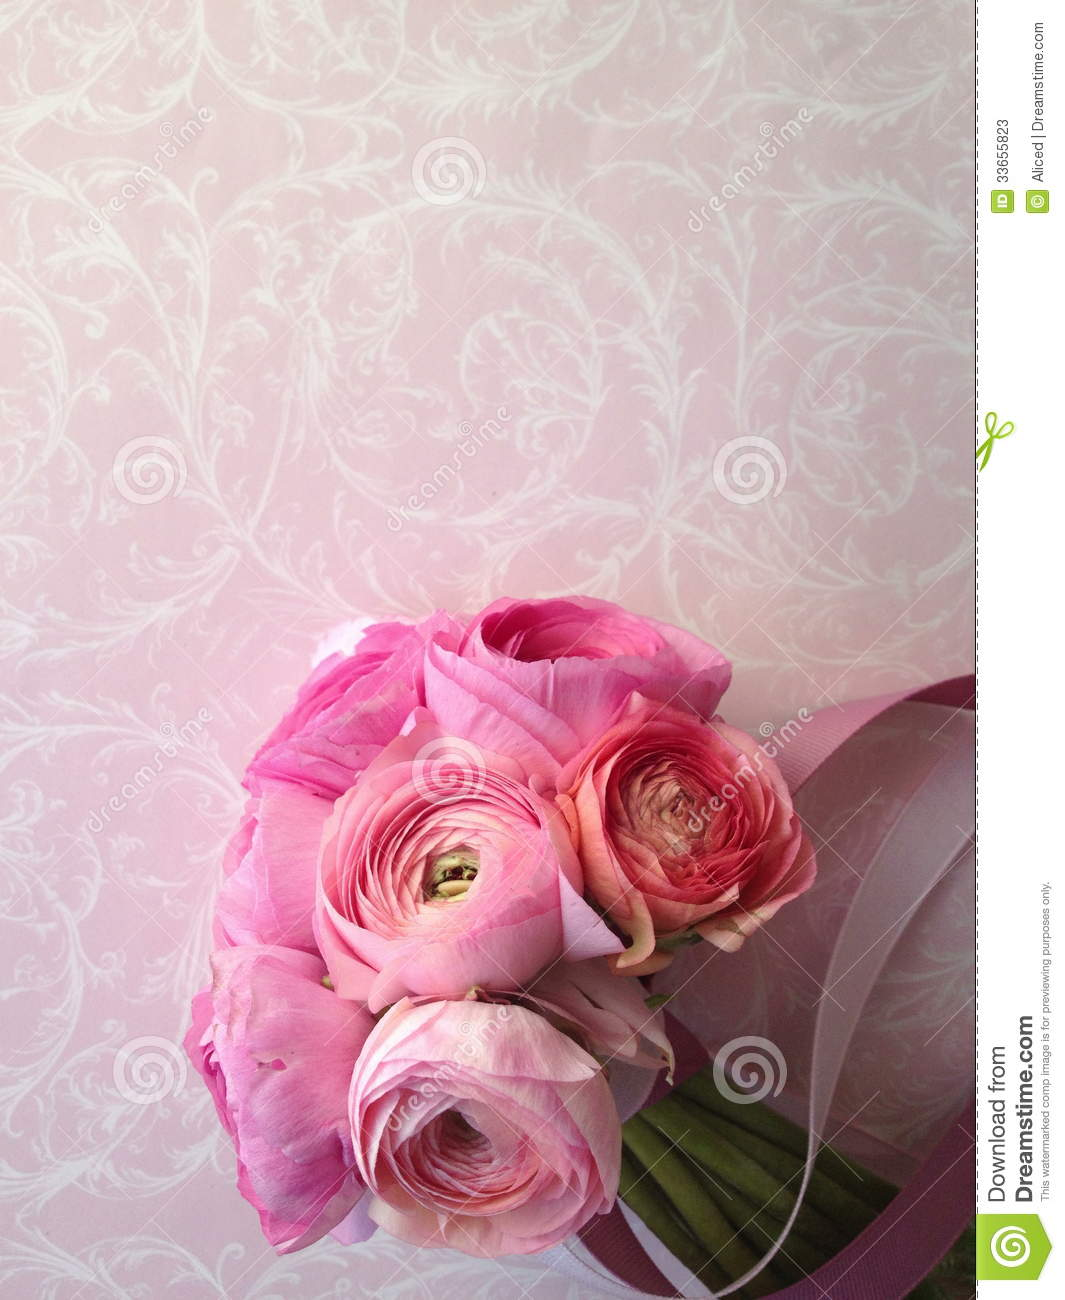 swirly roses background bouquet - photo #2